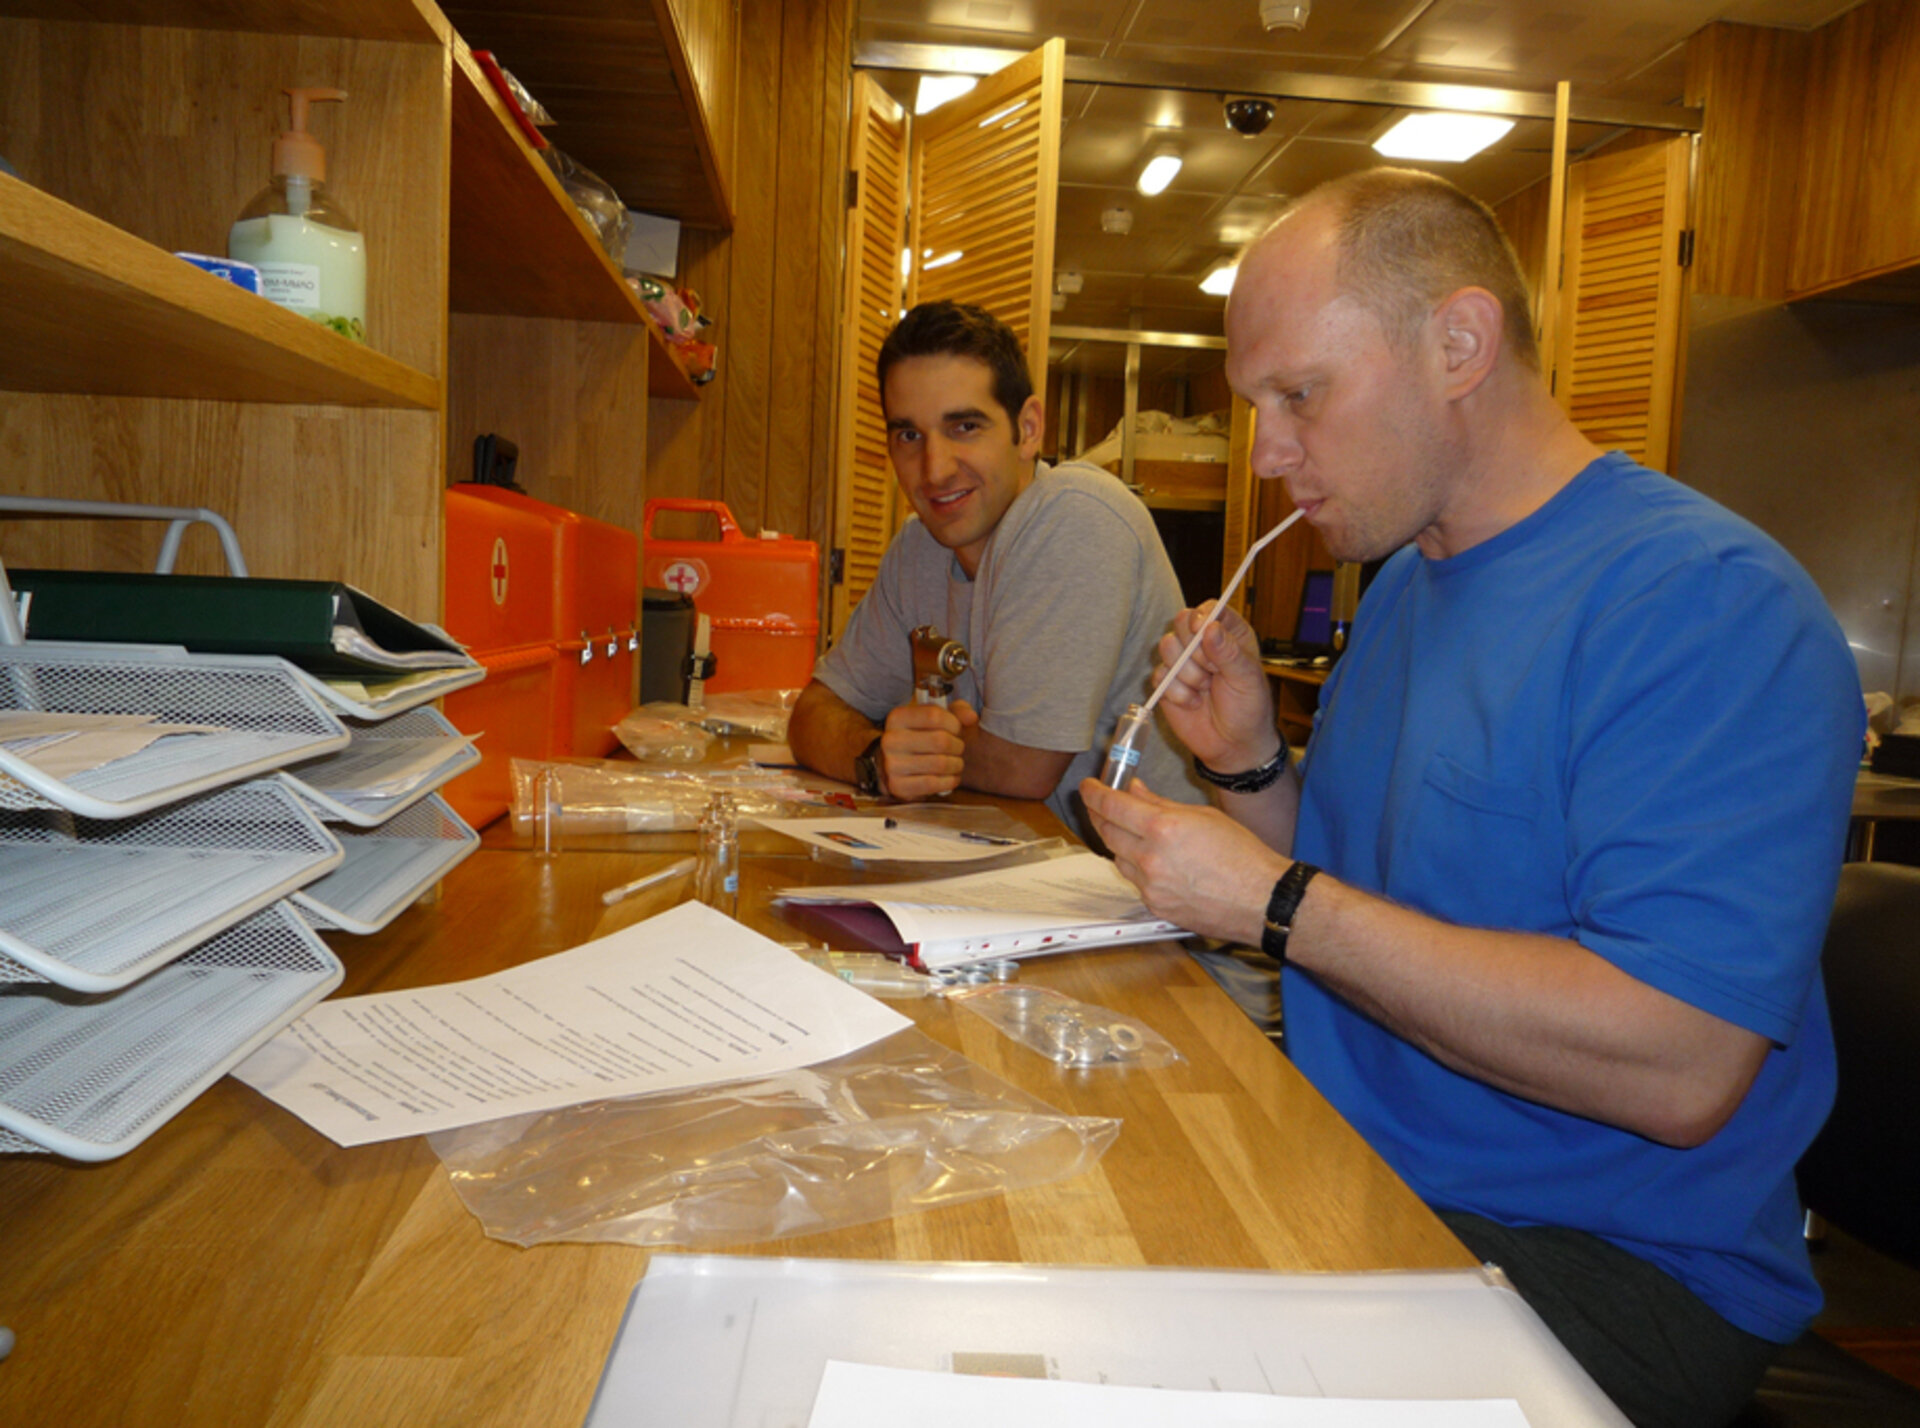 Oliver and Oleg collect expired air samples